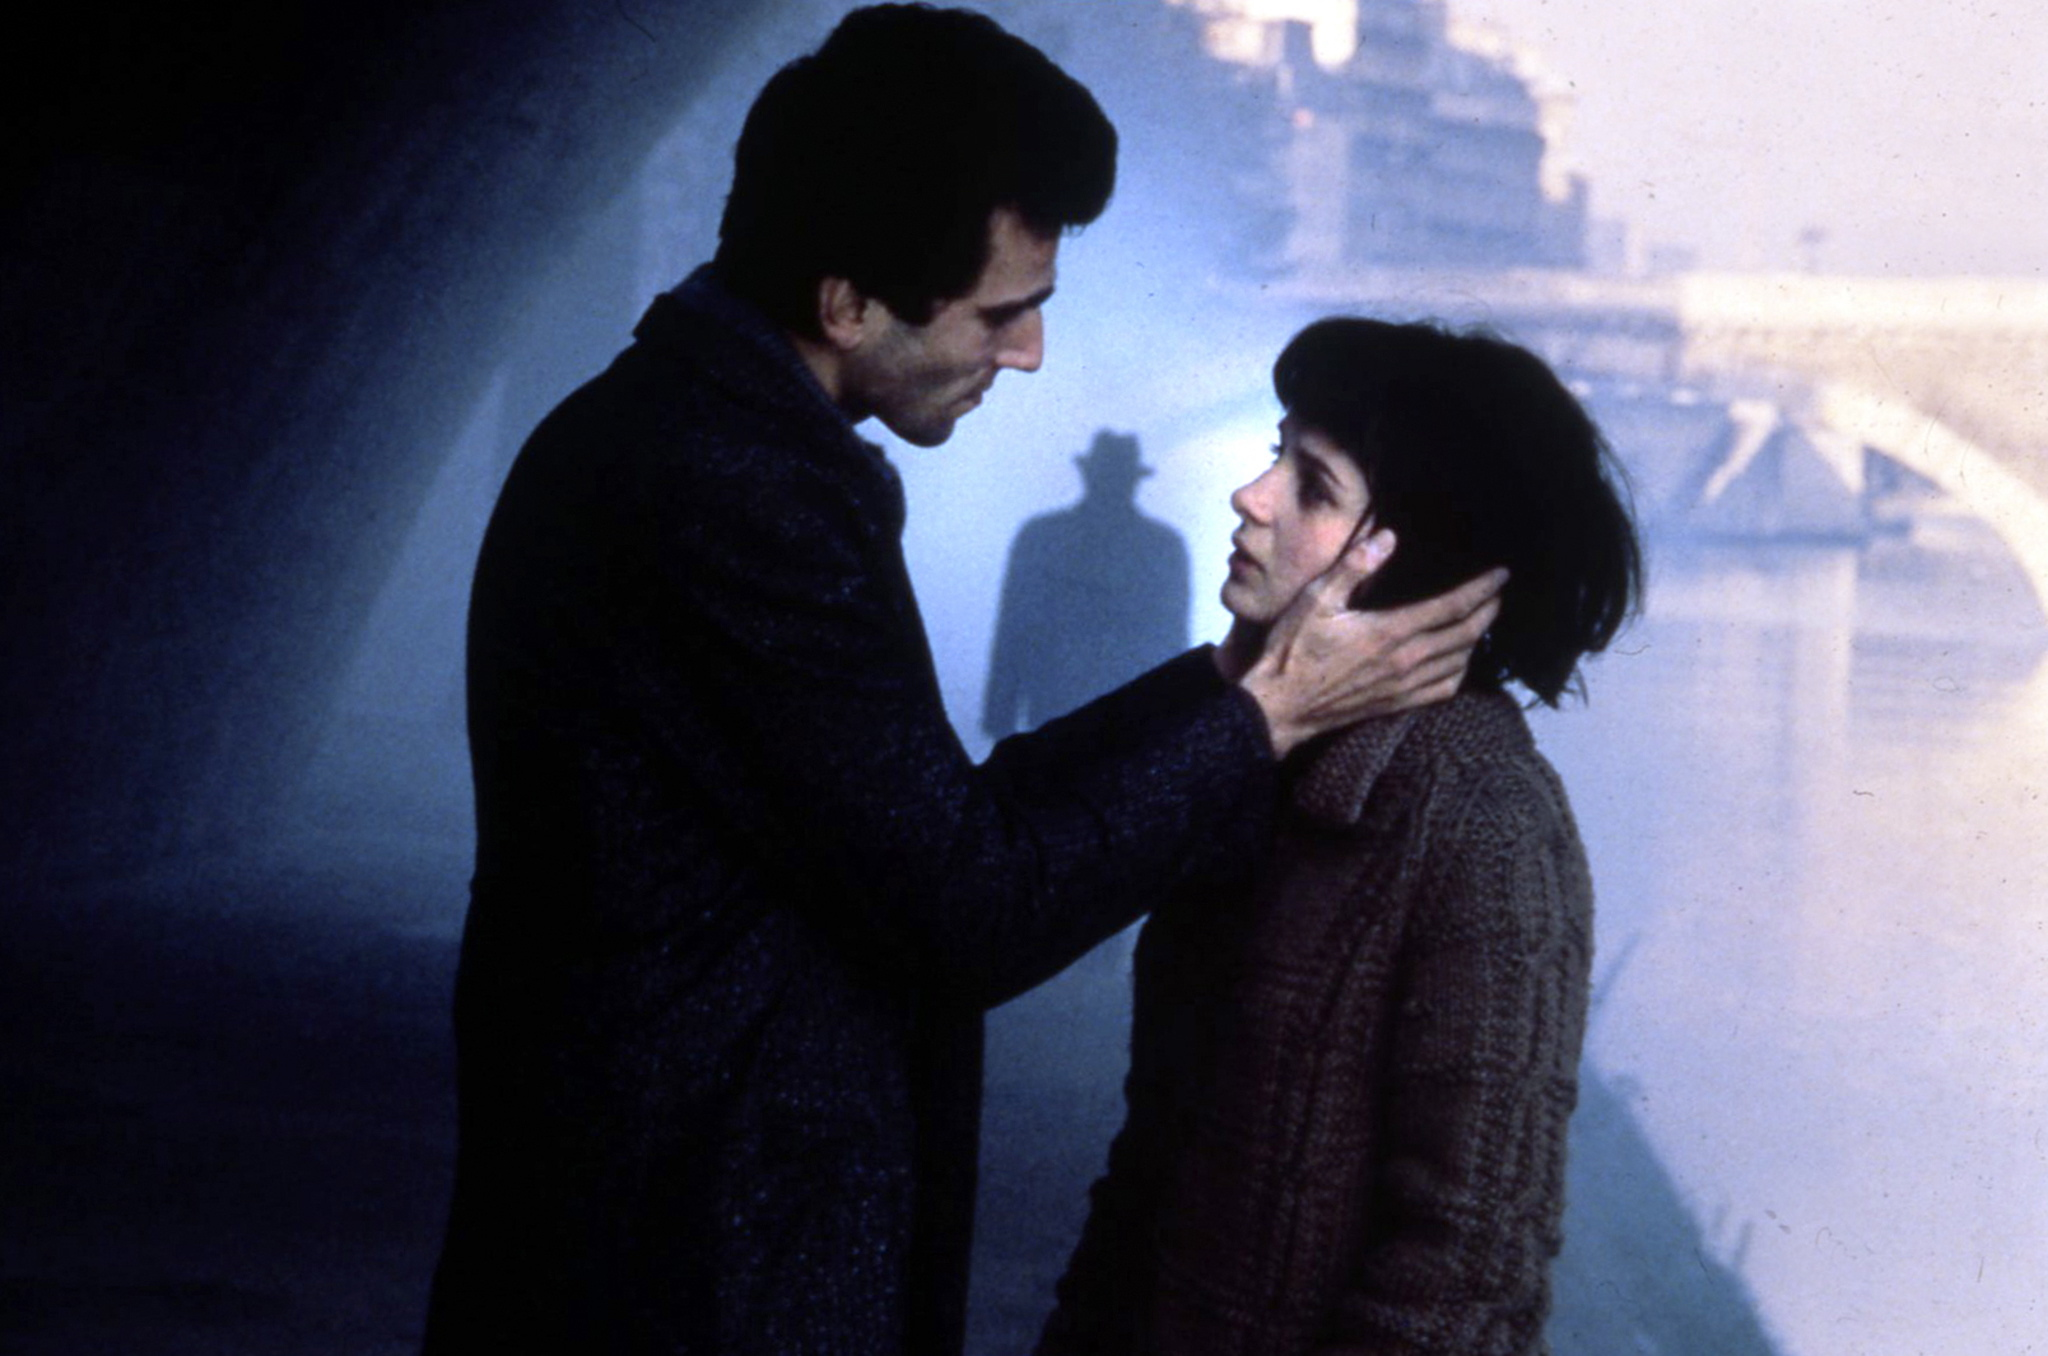 Romantic film: Unbearable Lightness of Being